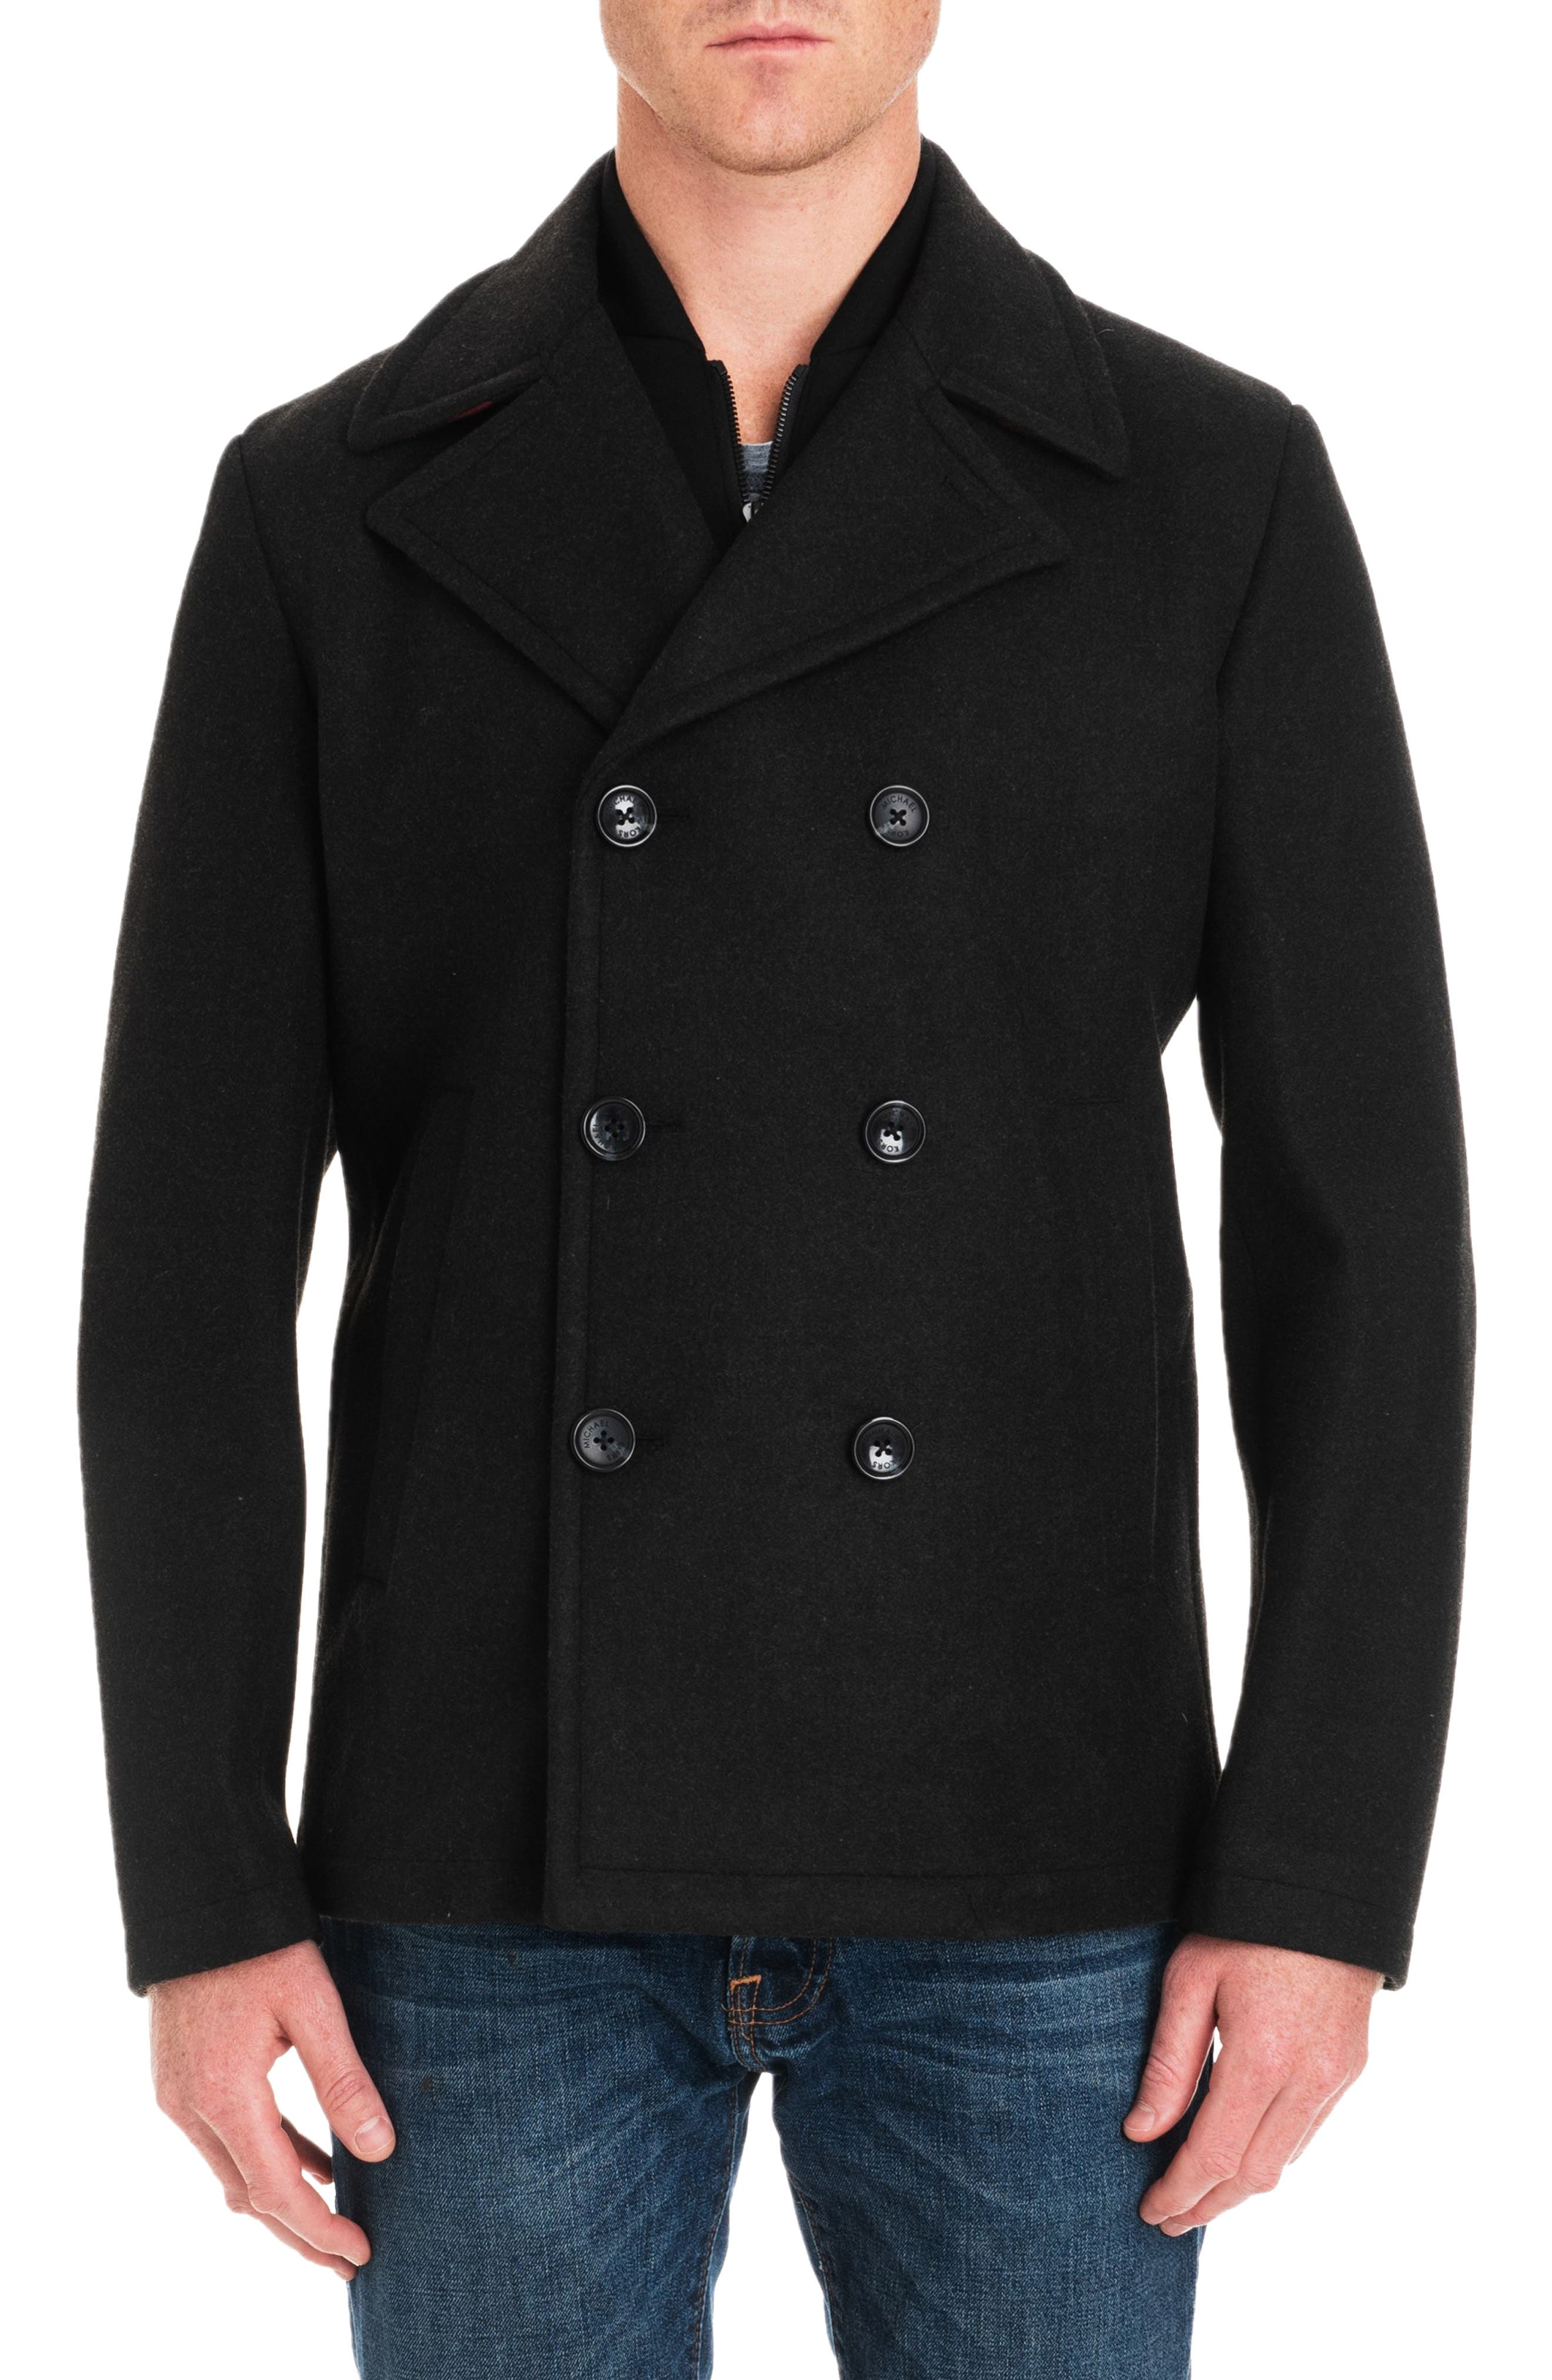 Seventh Street Peacoat,                             Main thumbnail 1, color,                             LODEN HEATHER